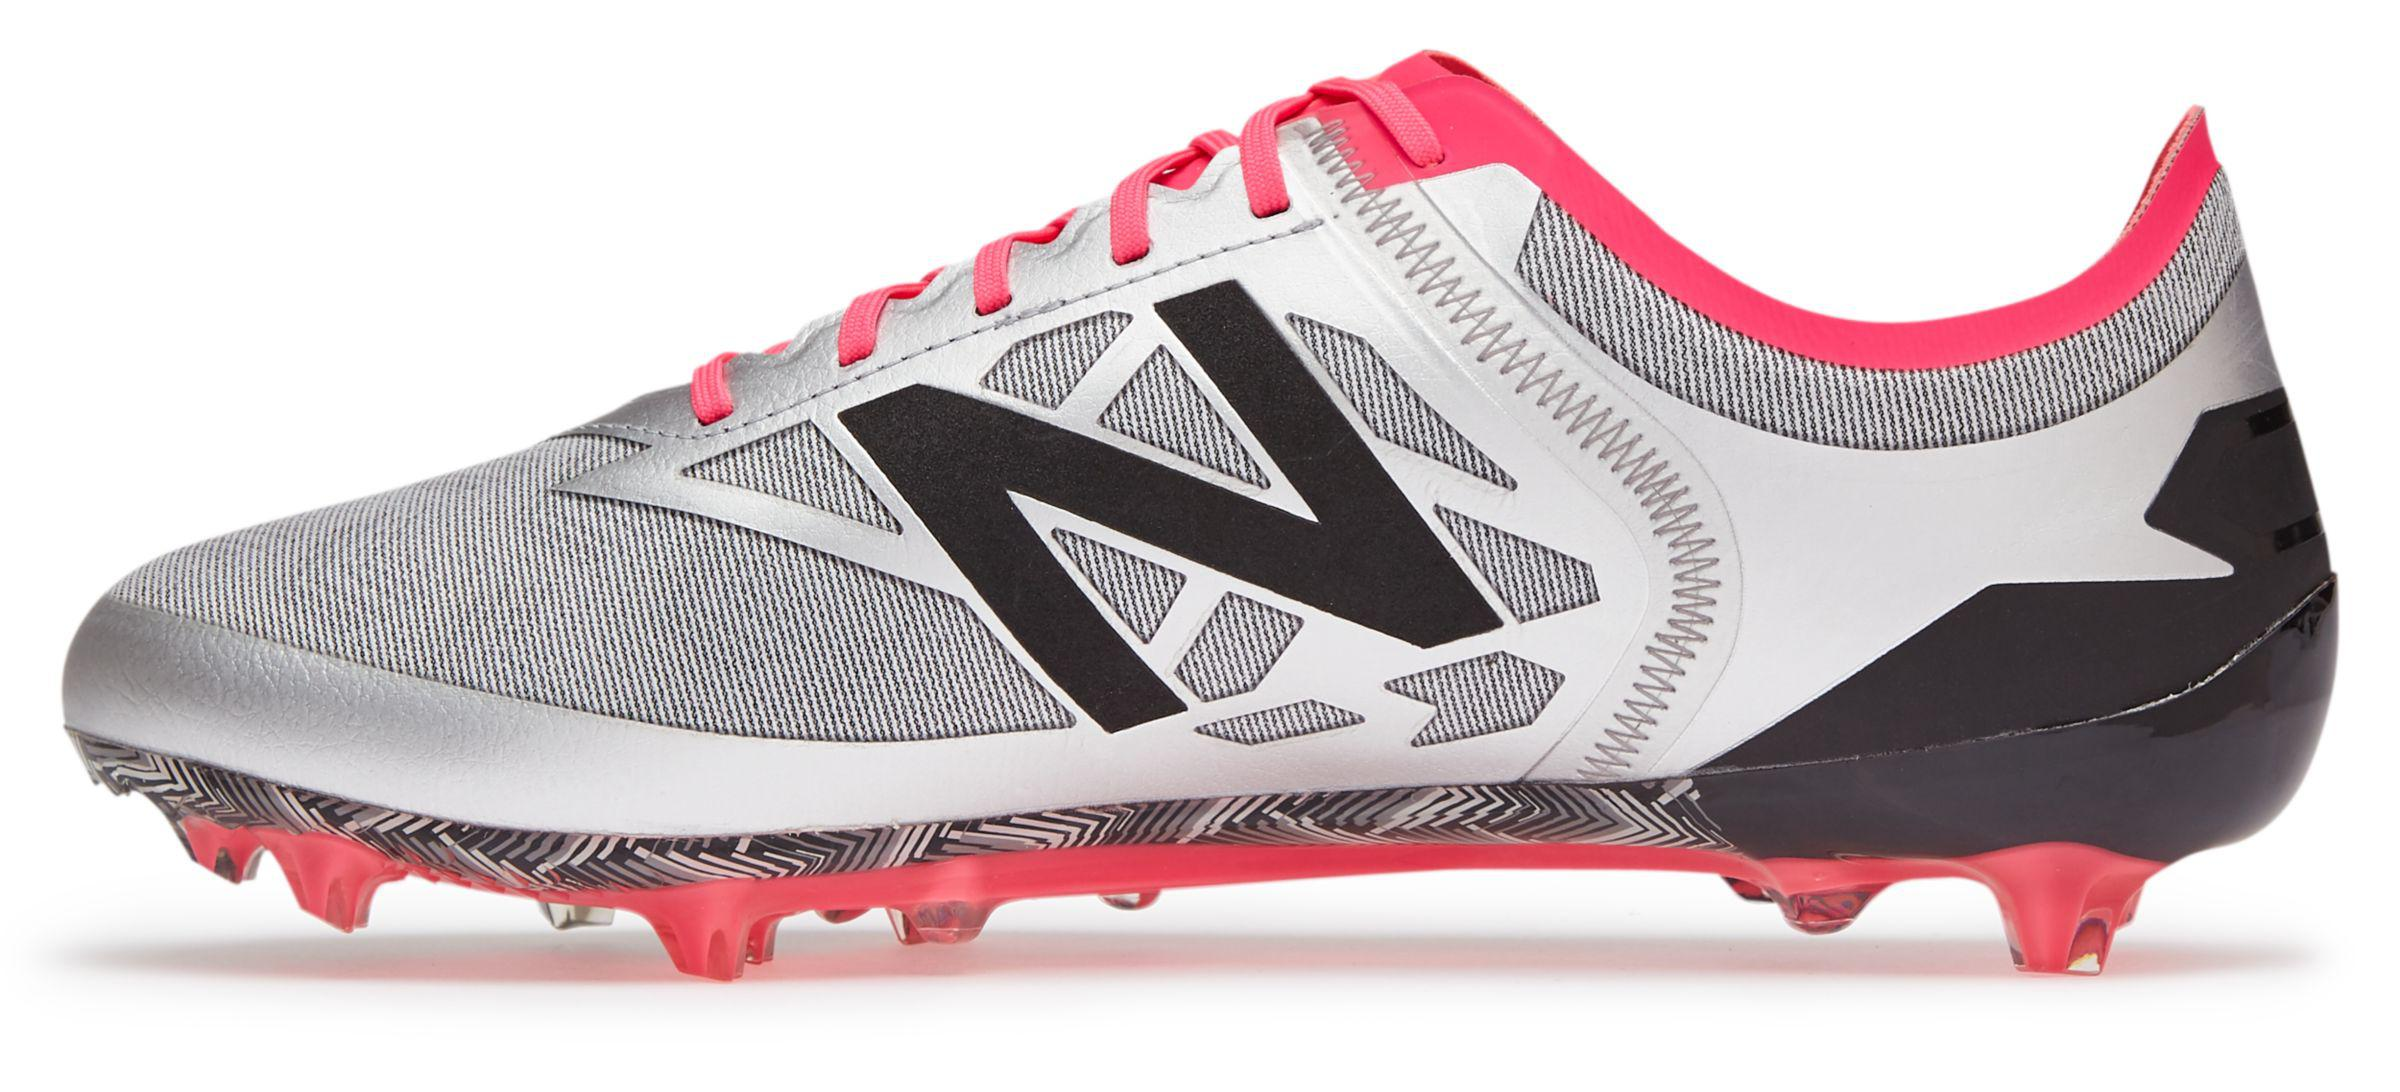 bada27ef6 New Balance - Pink Furon Flare Limited Edition for Men - Lyst. View  fullscreen